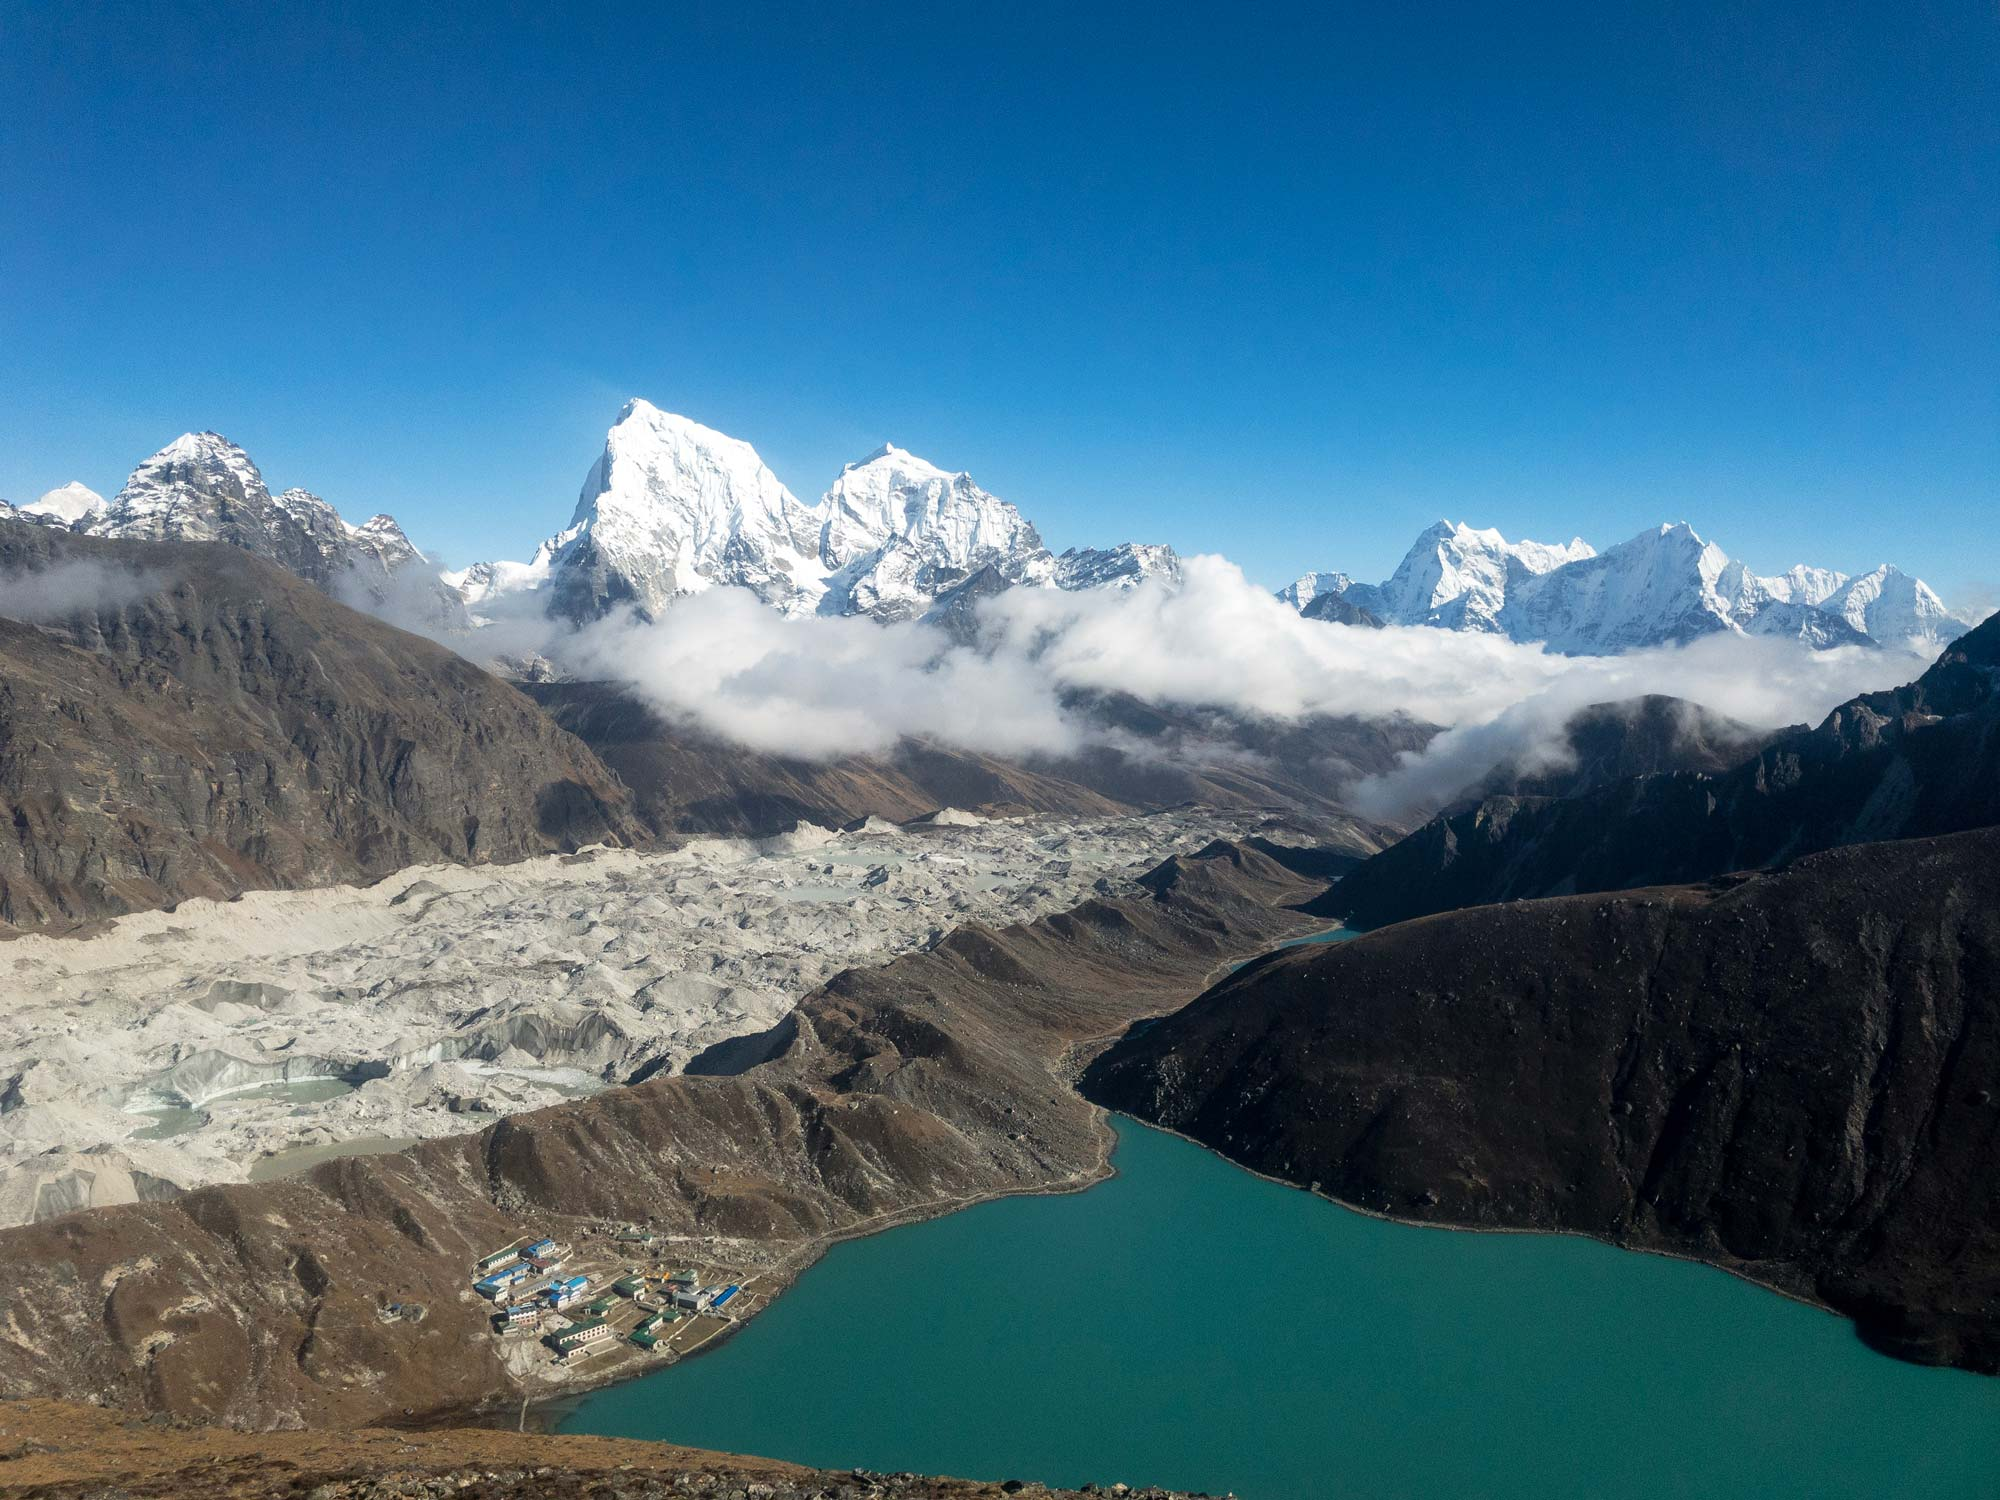 Gokyo town and valley from the top of Gokyo Ri Mountain | Travel Photography | Nature photography